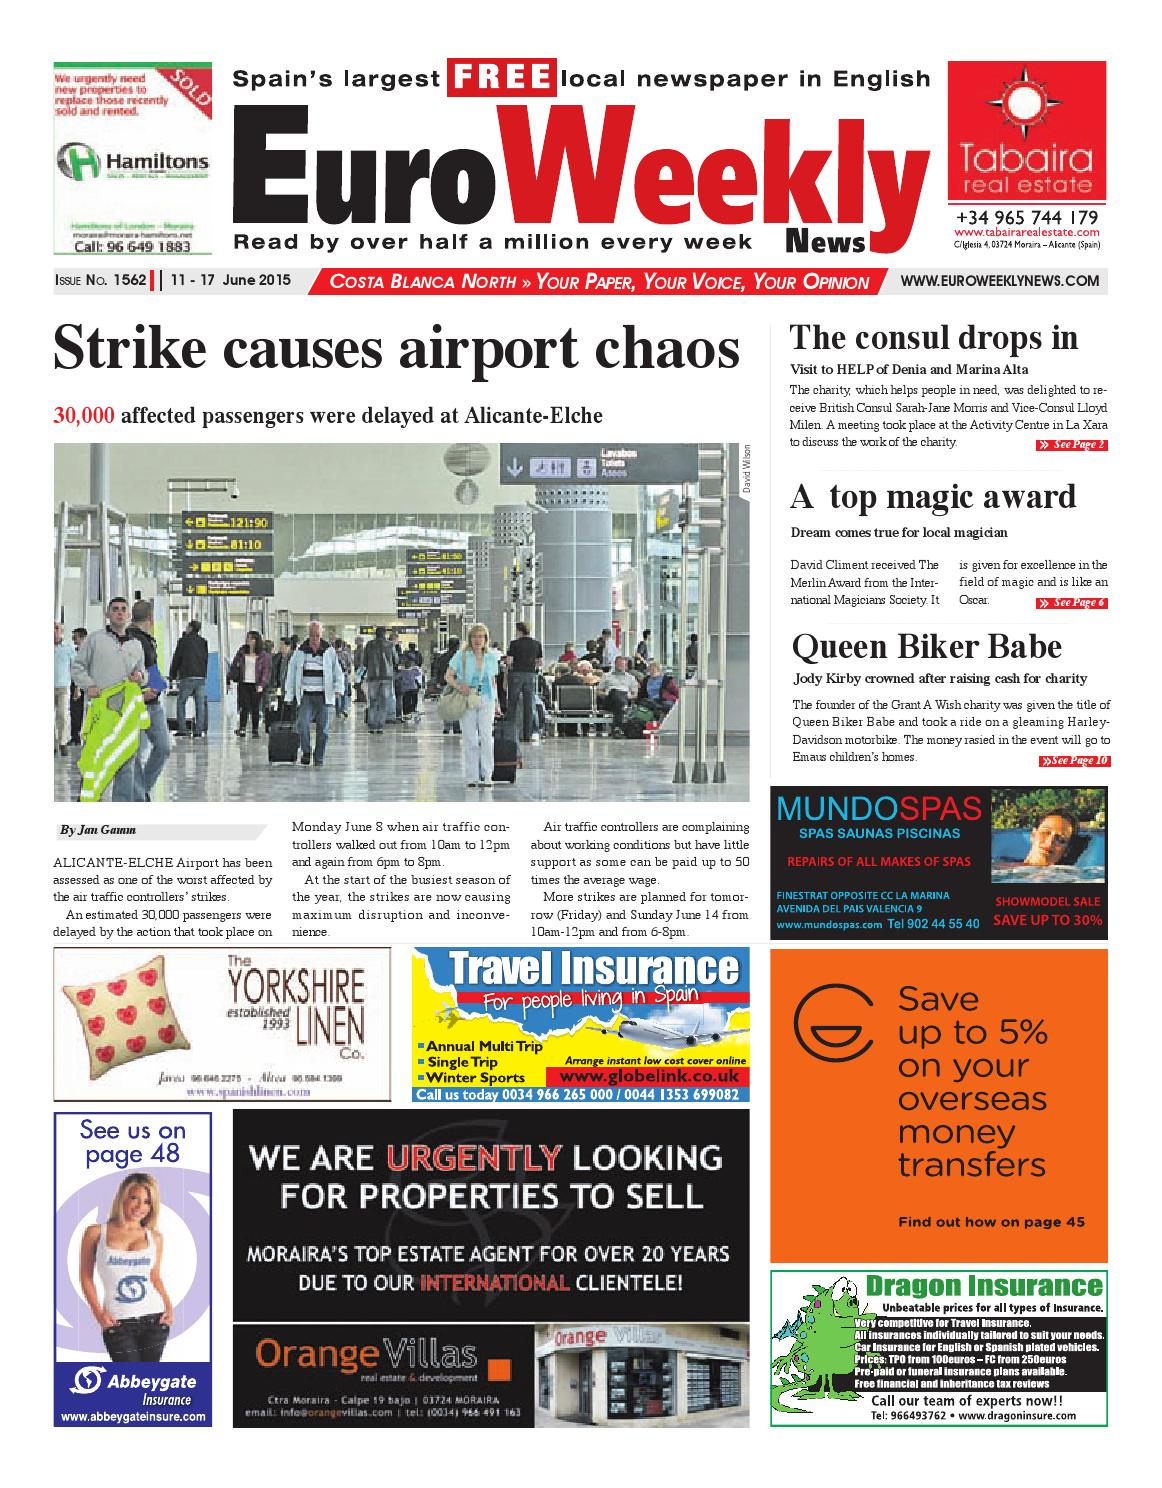 Euro Weekly News Costa Blanca North 11 17 June 2015 Issue 1562